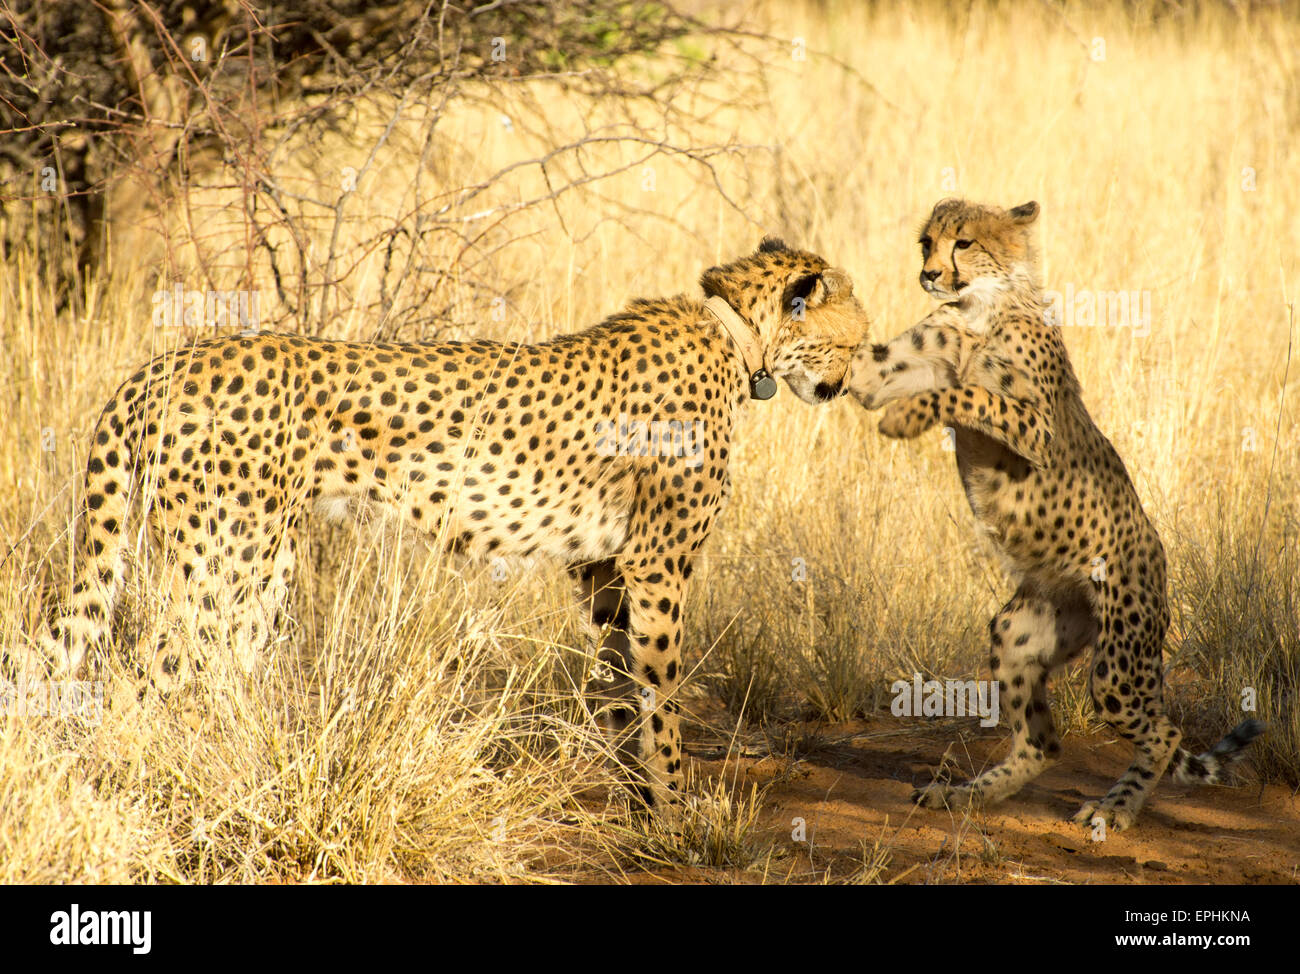 Africa, Namibia. AfriCat Foundation. Young cheetah playing with mother cheetah. - Stock Image